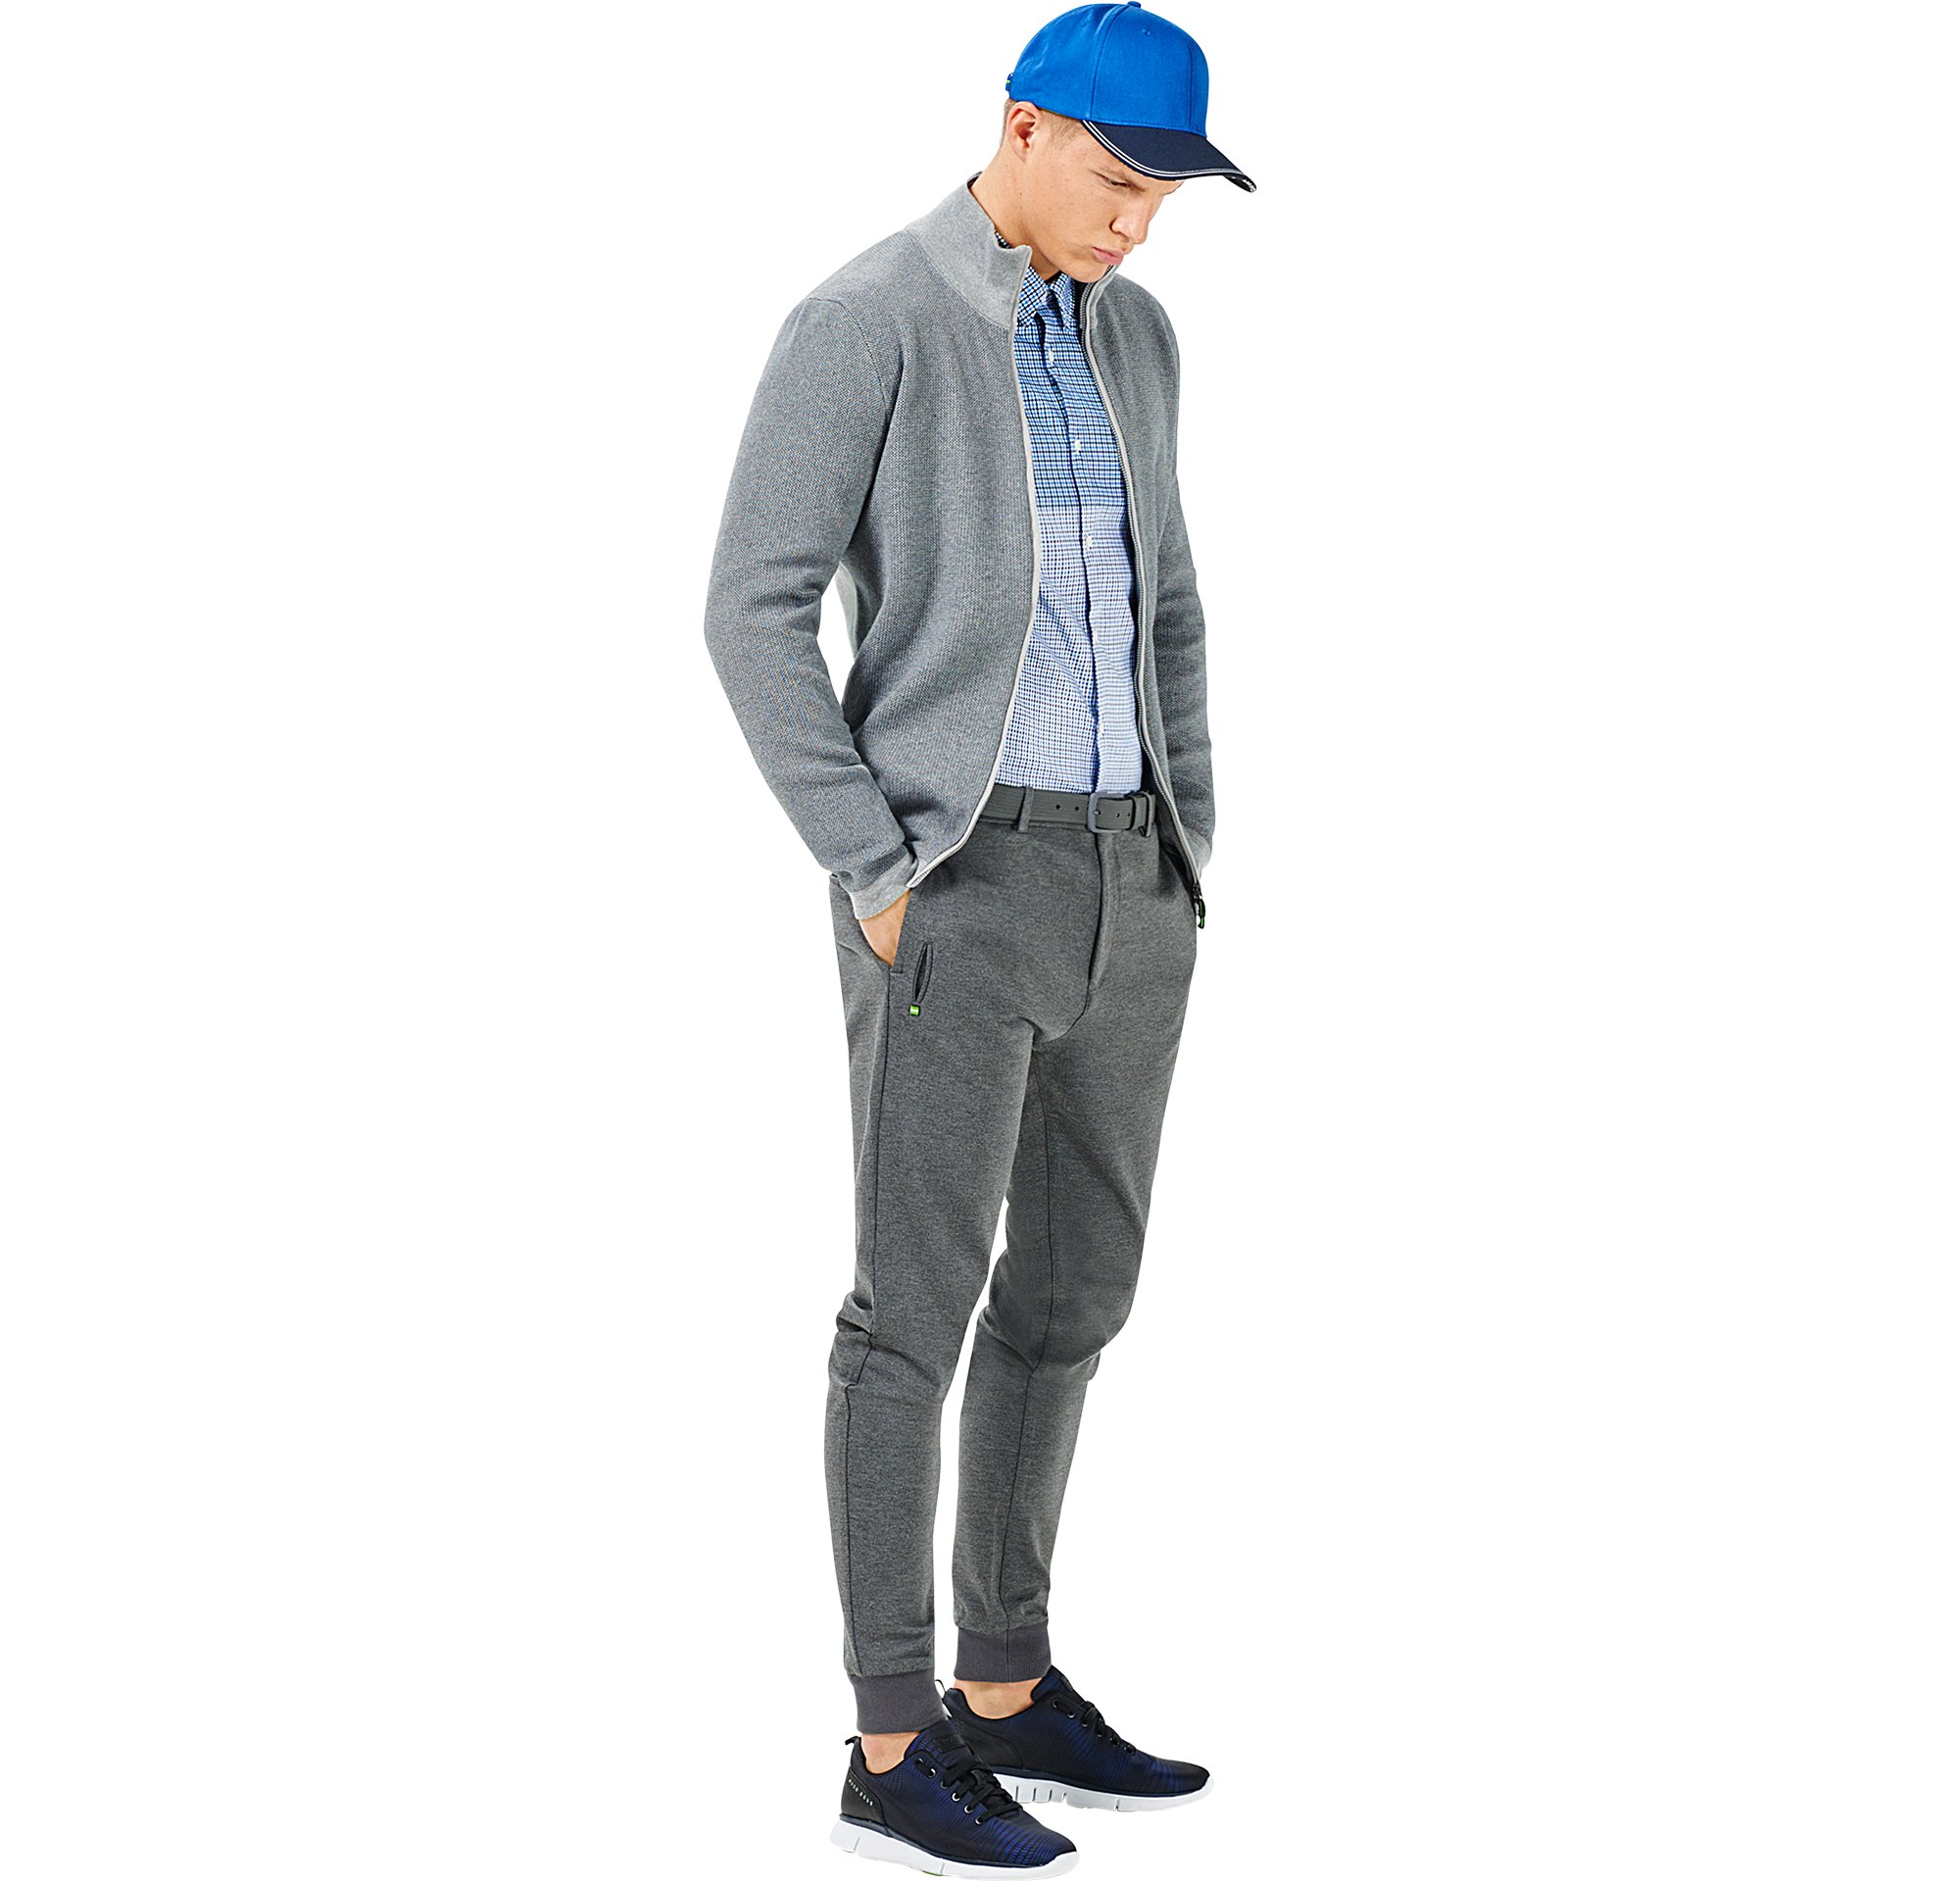 Knitwear, shirt, jersey, trousers and shoes by BOSS Green Menswear